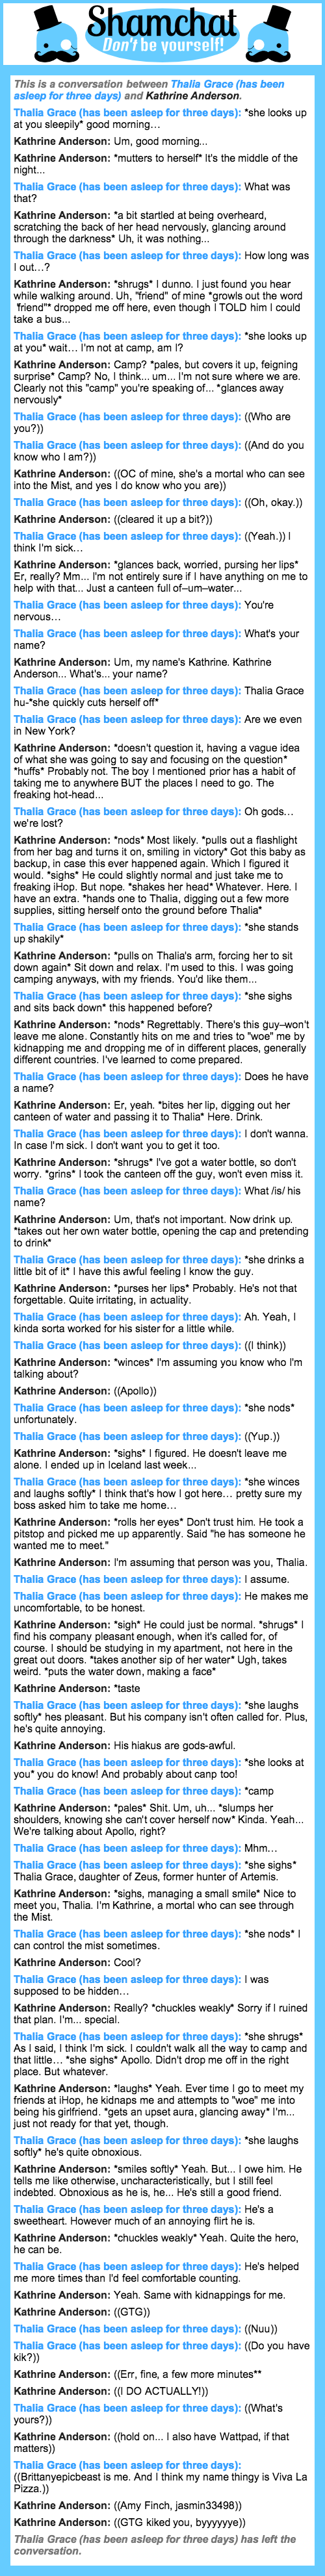 A conversation between Kathrine Anderson and Thalia Grace (has been asleep for three days)